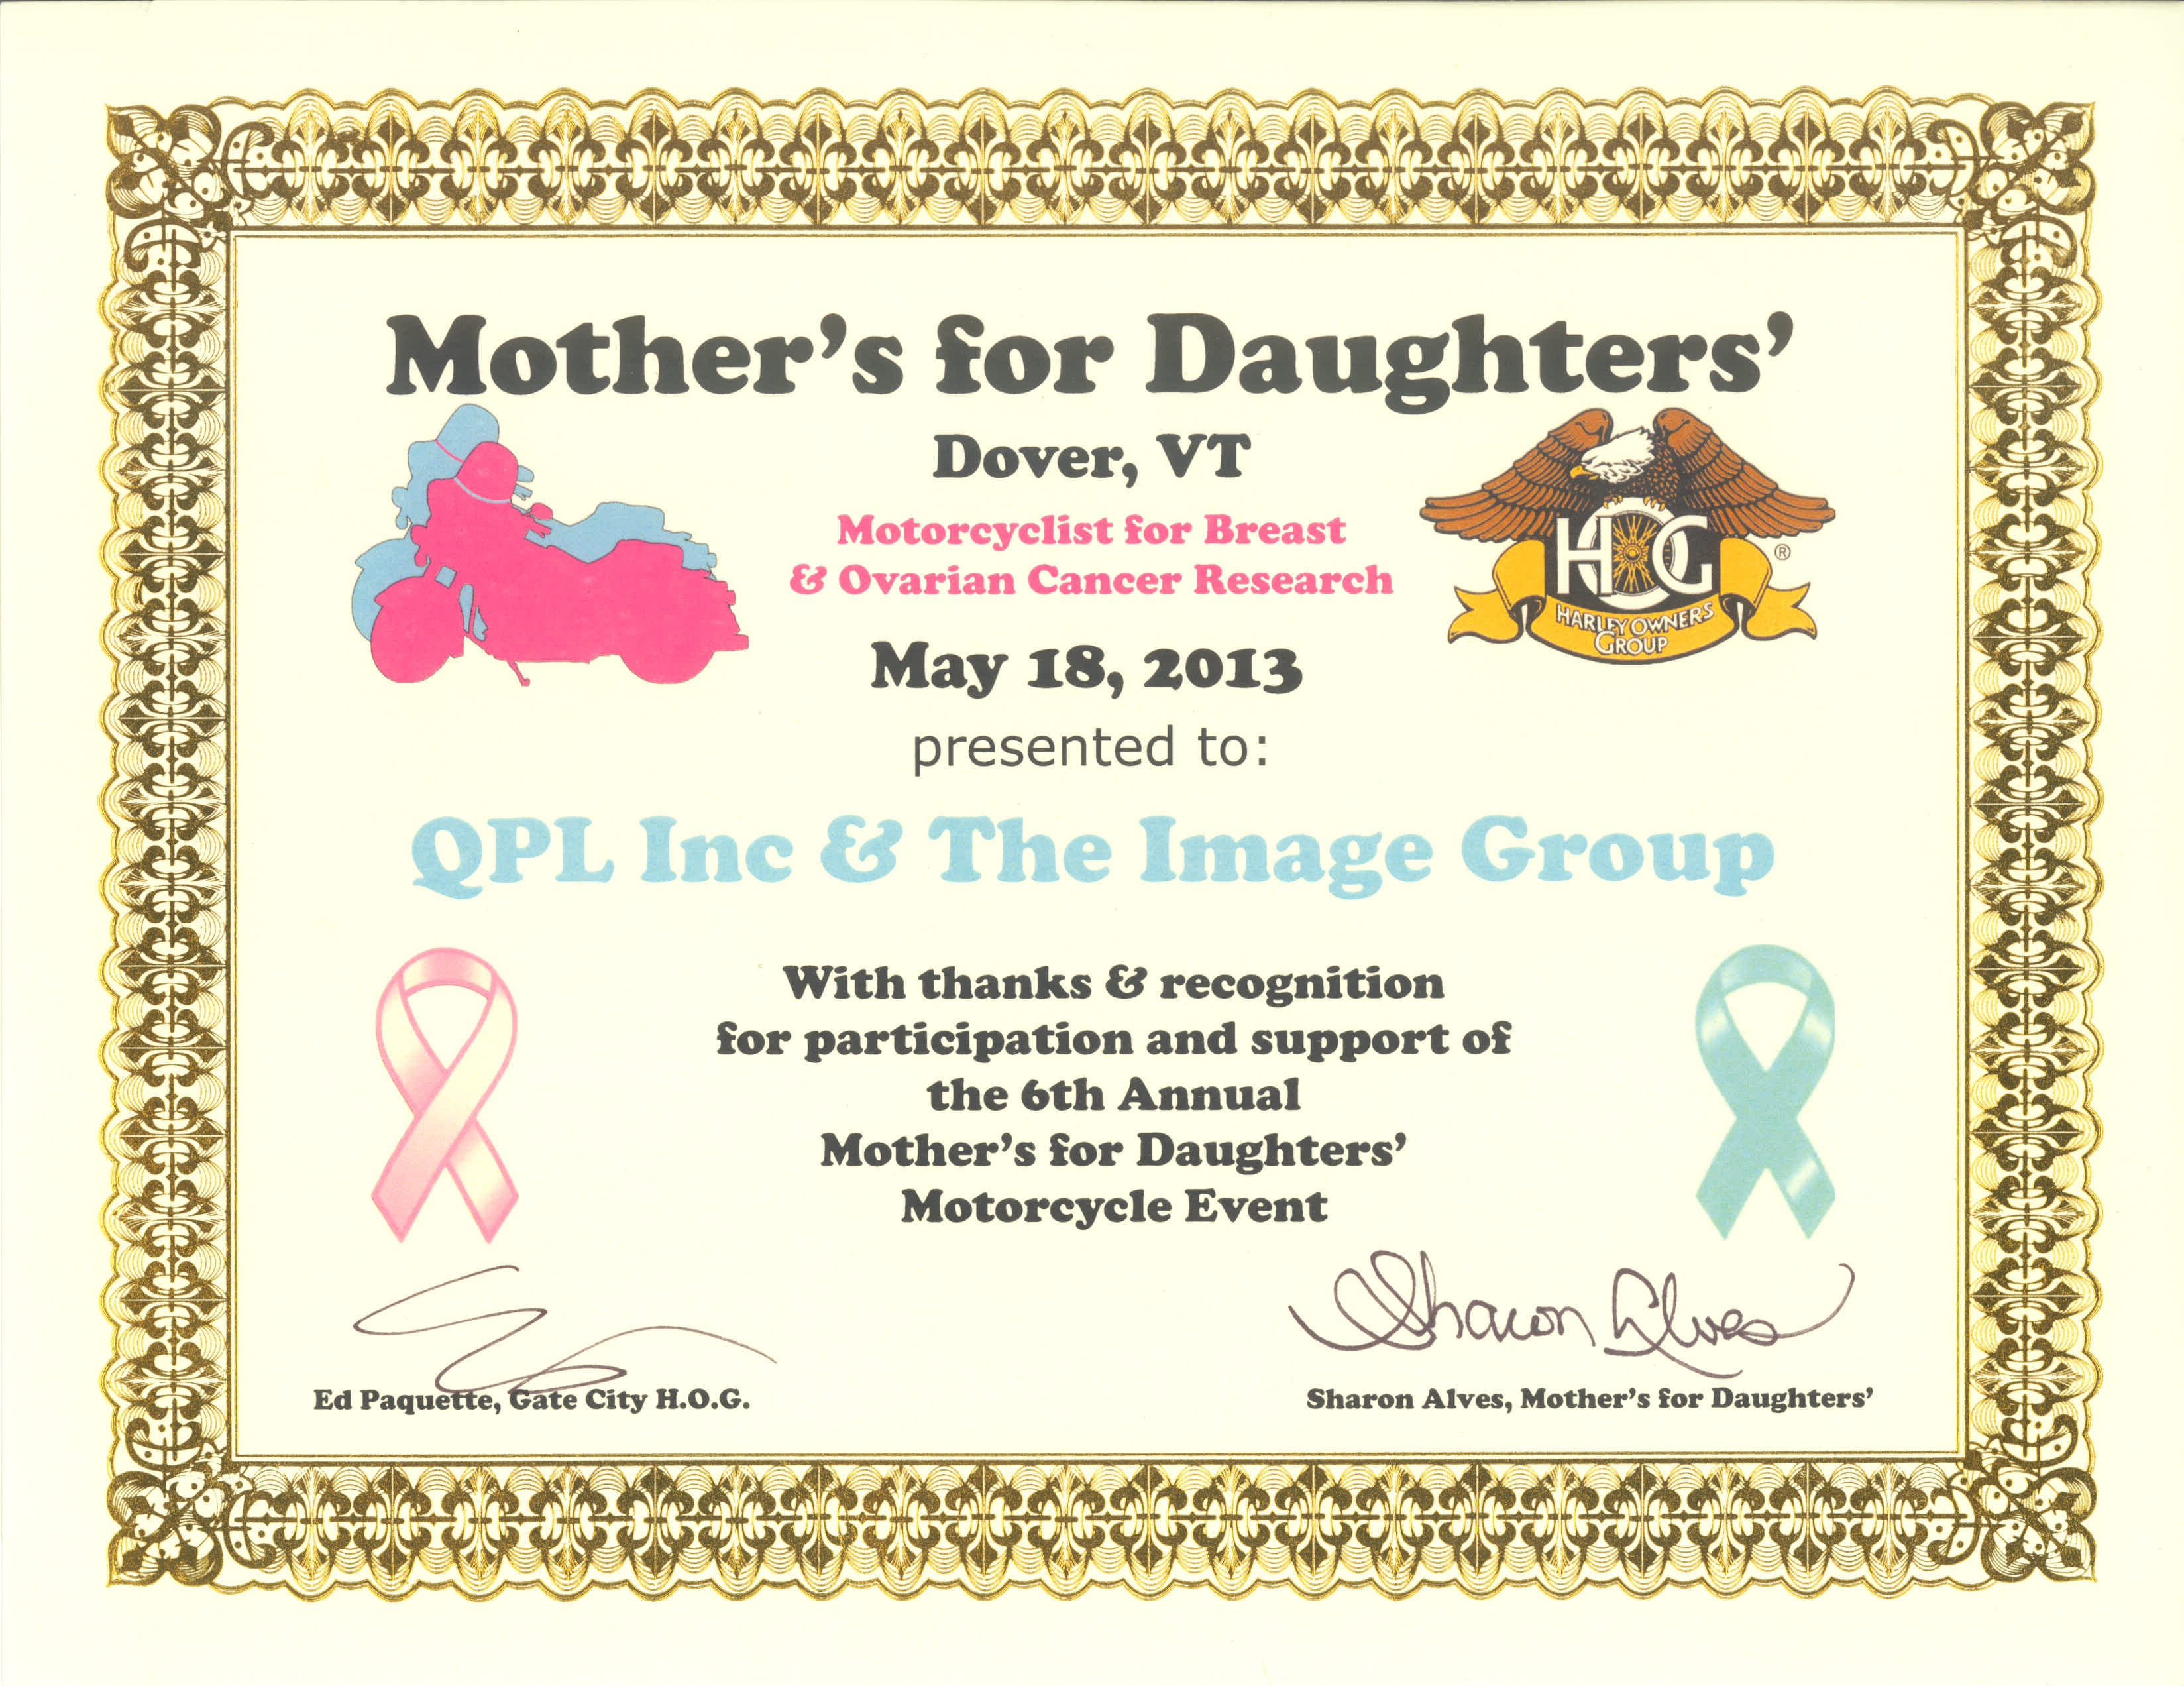 QPL Inc & The Image Group Support Breast and Ovarian Cancer